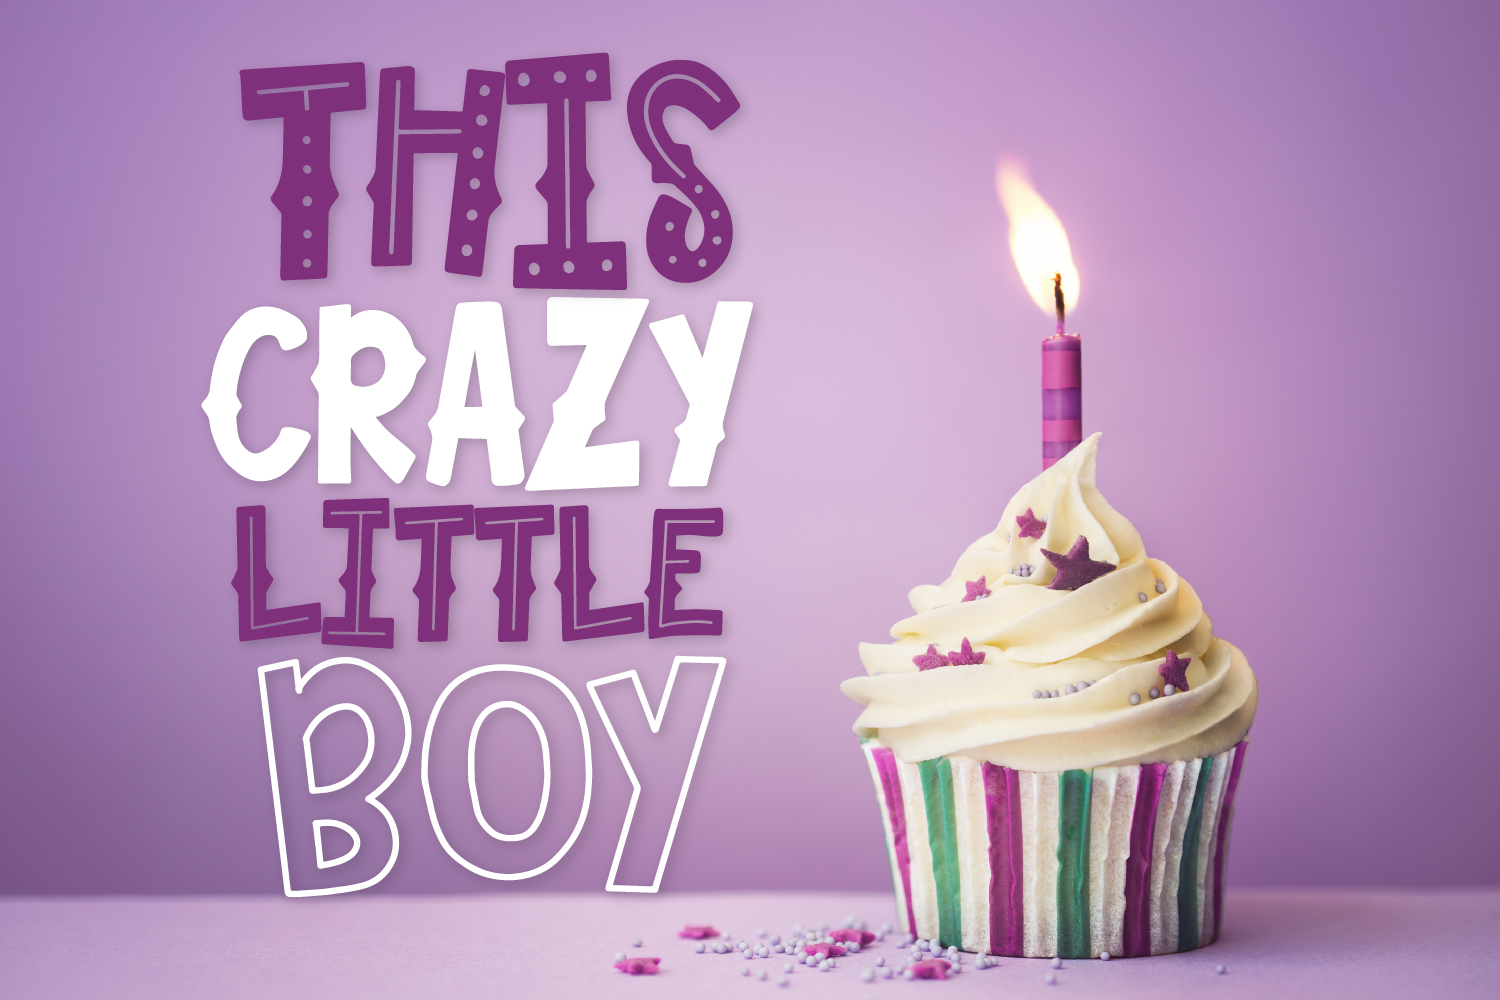 This Crazy Little Boy - A Fun Mixed Style Font Duo example image 1